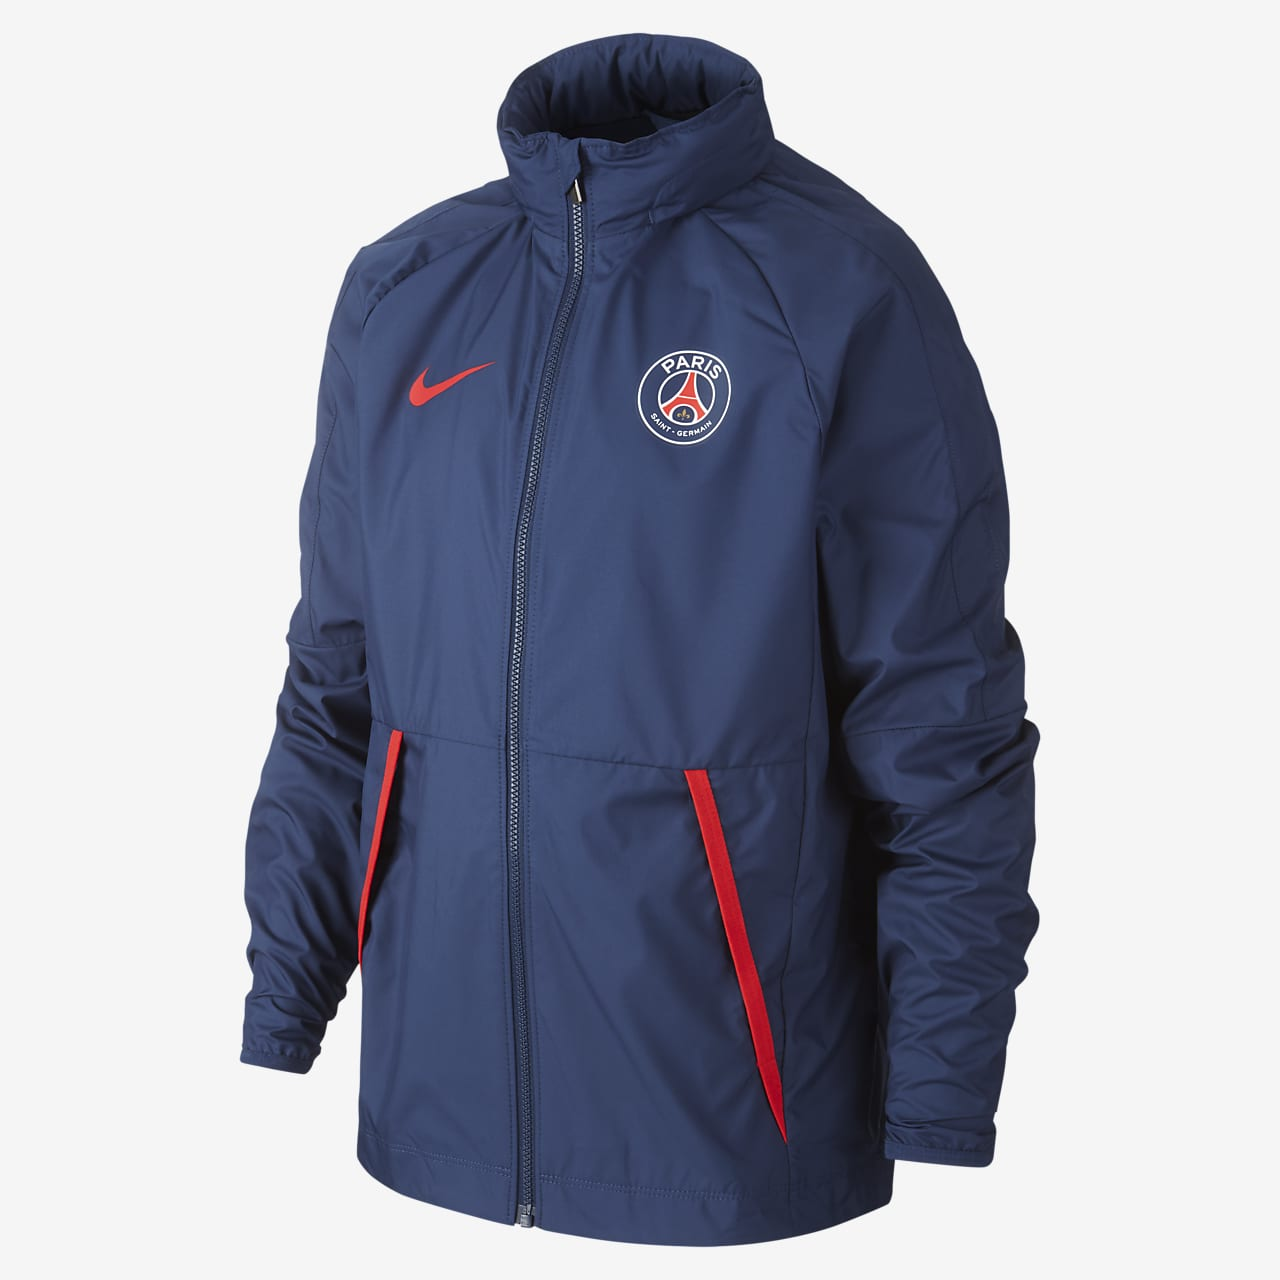 Veste de football Paris Saint-Germain pour Enfant plus âgé